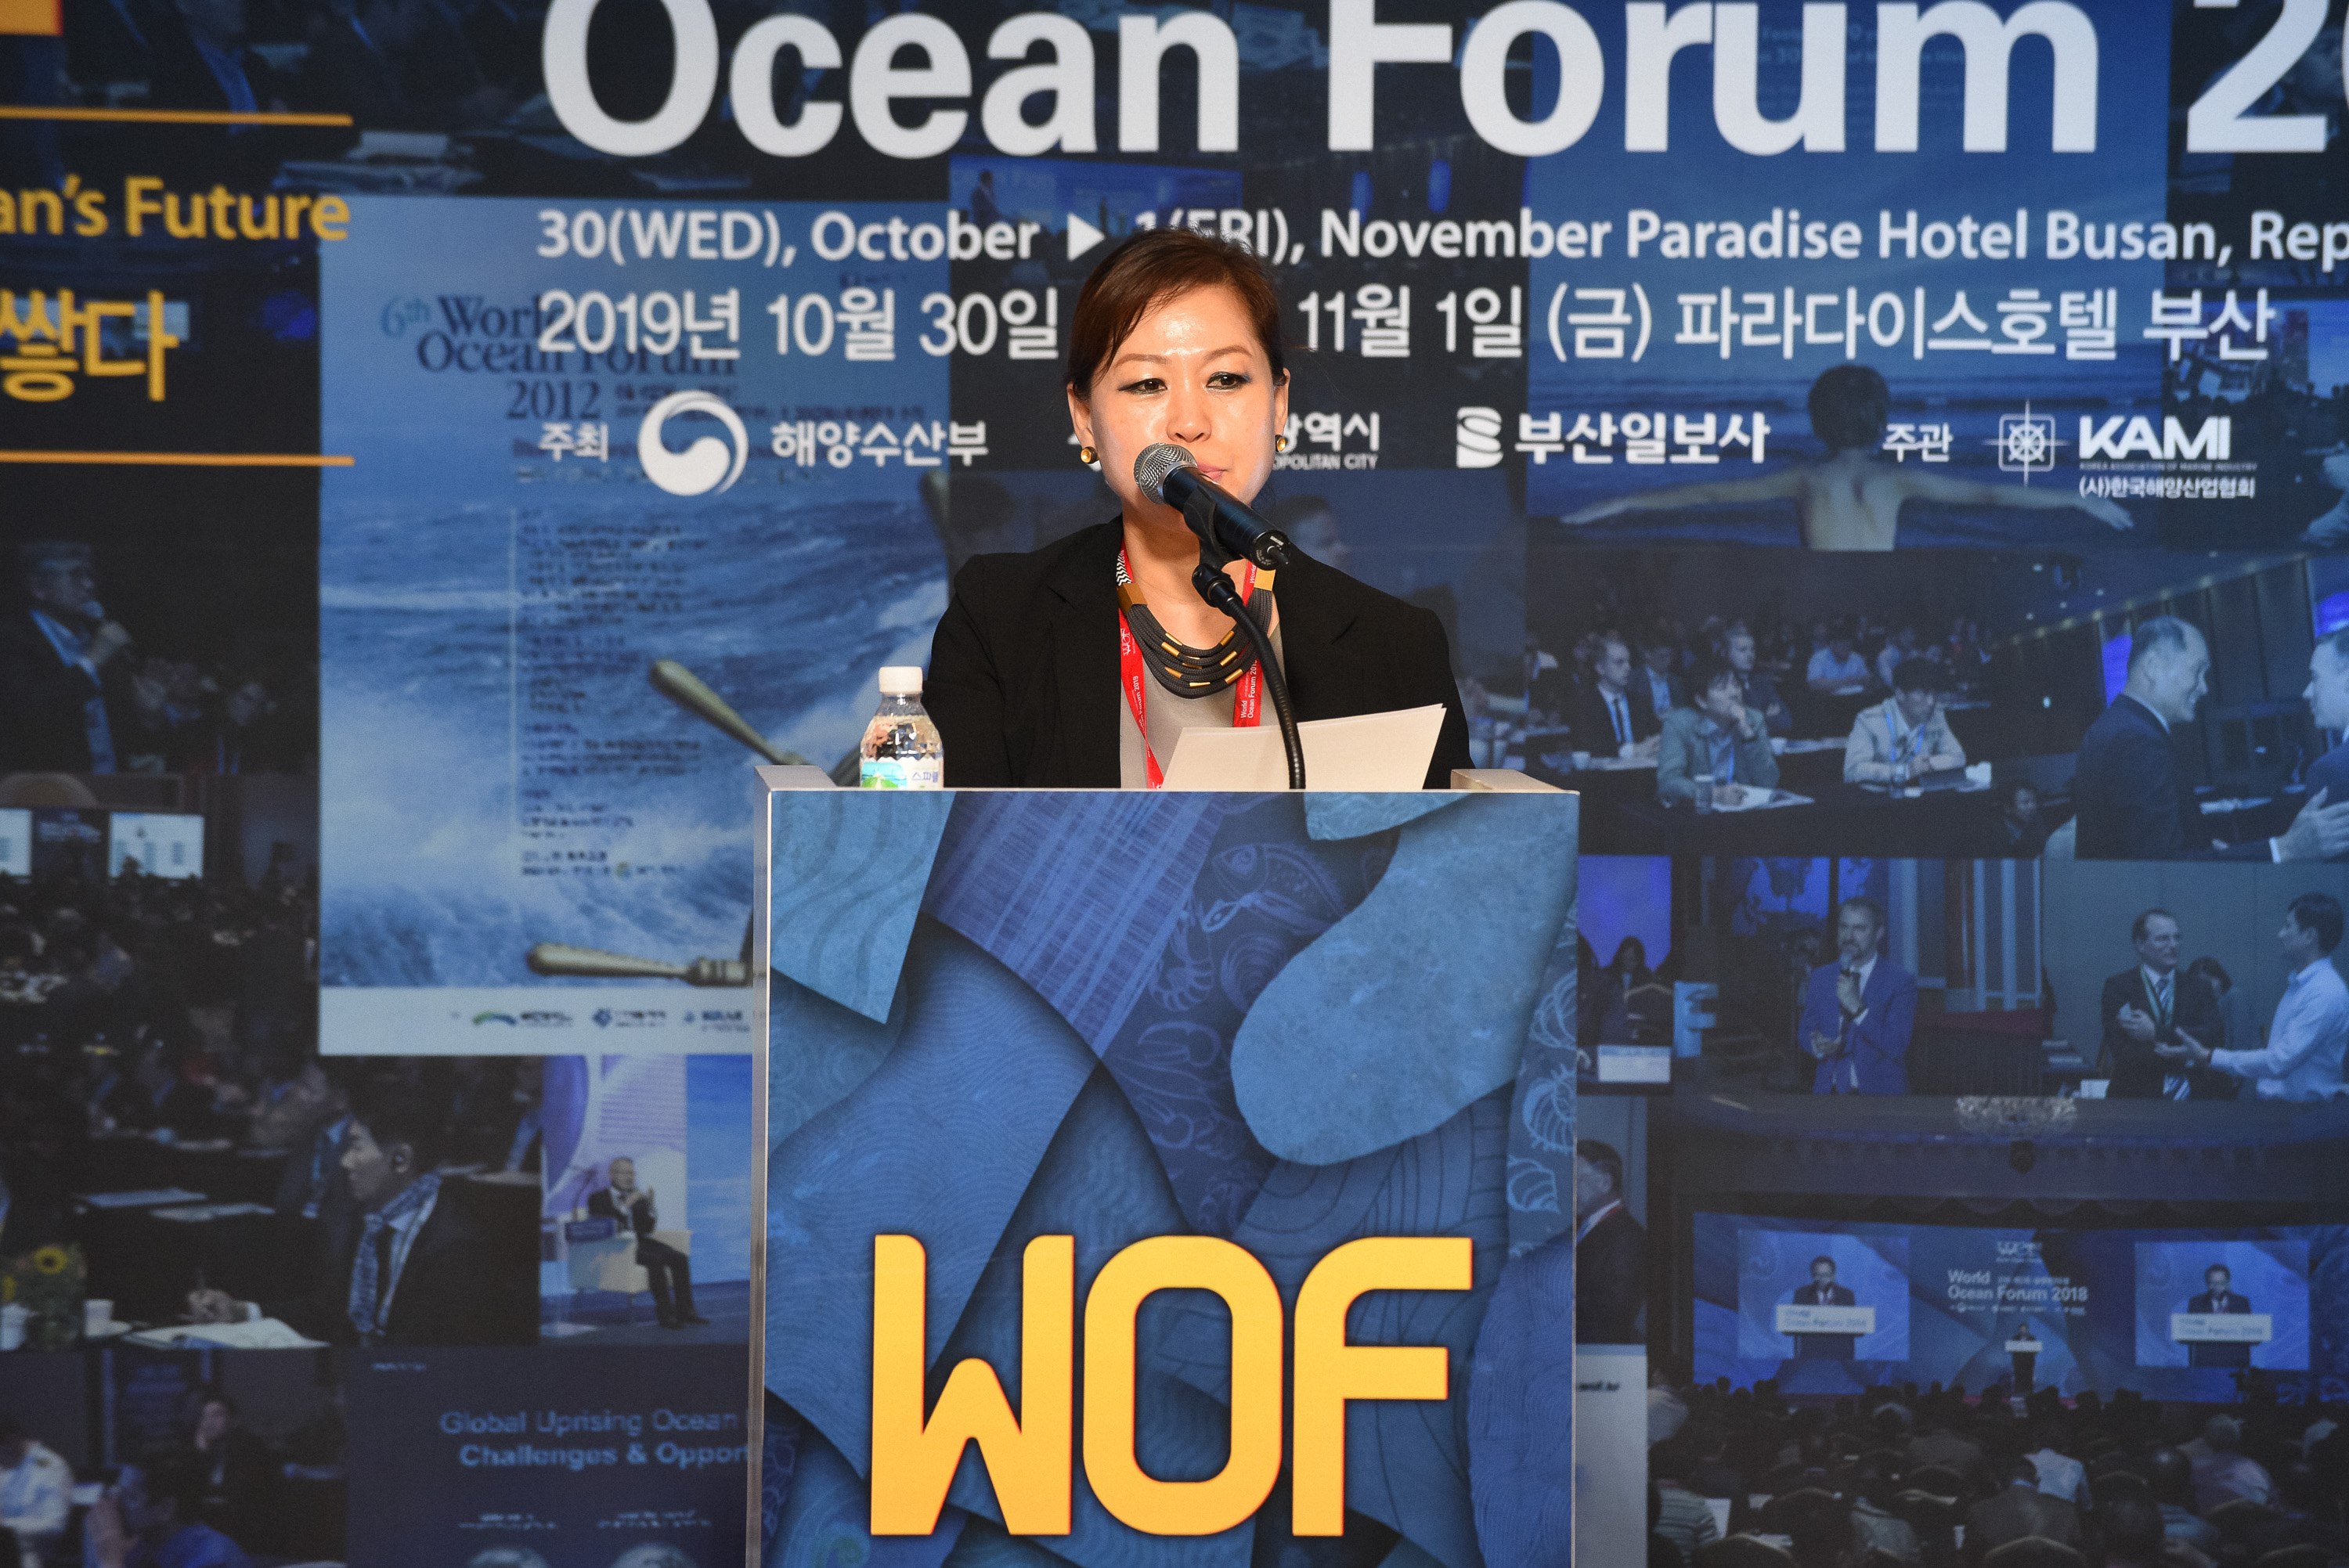 [WOF 2019] Day 3 / Special Session 5. The 4th Ocean Start-Up Thumbnail Image